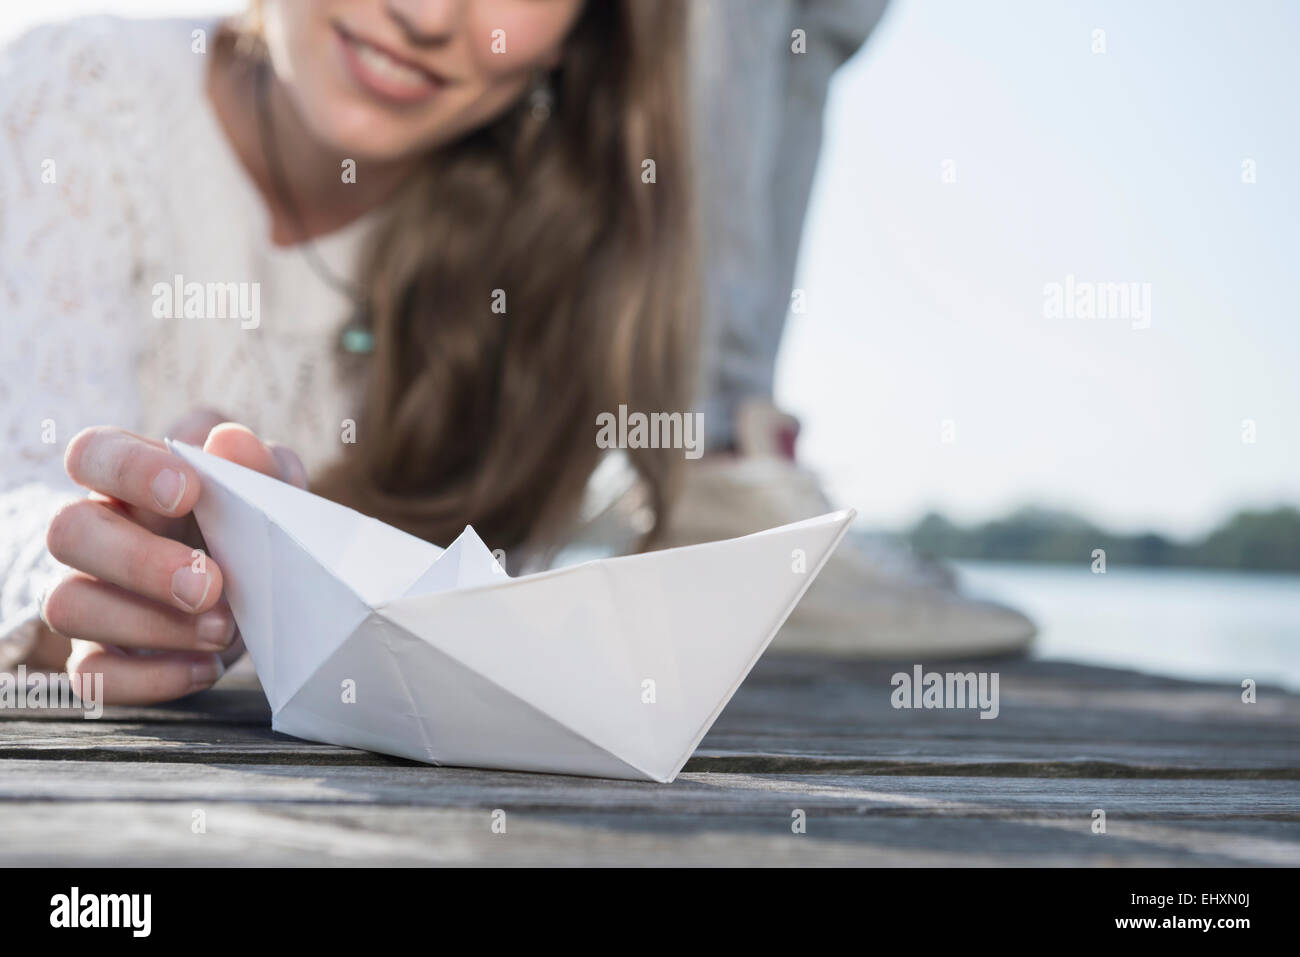 Close up woman holding white paper boat detail - Stock Image